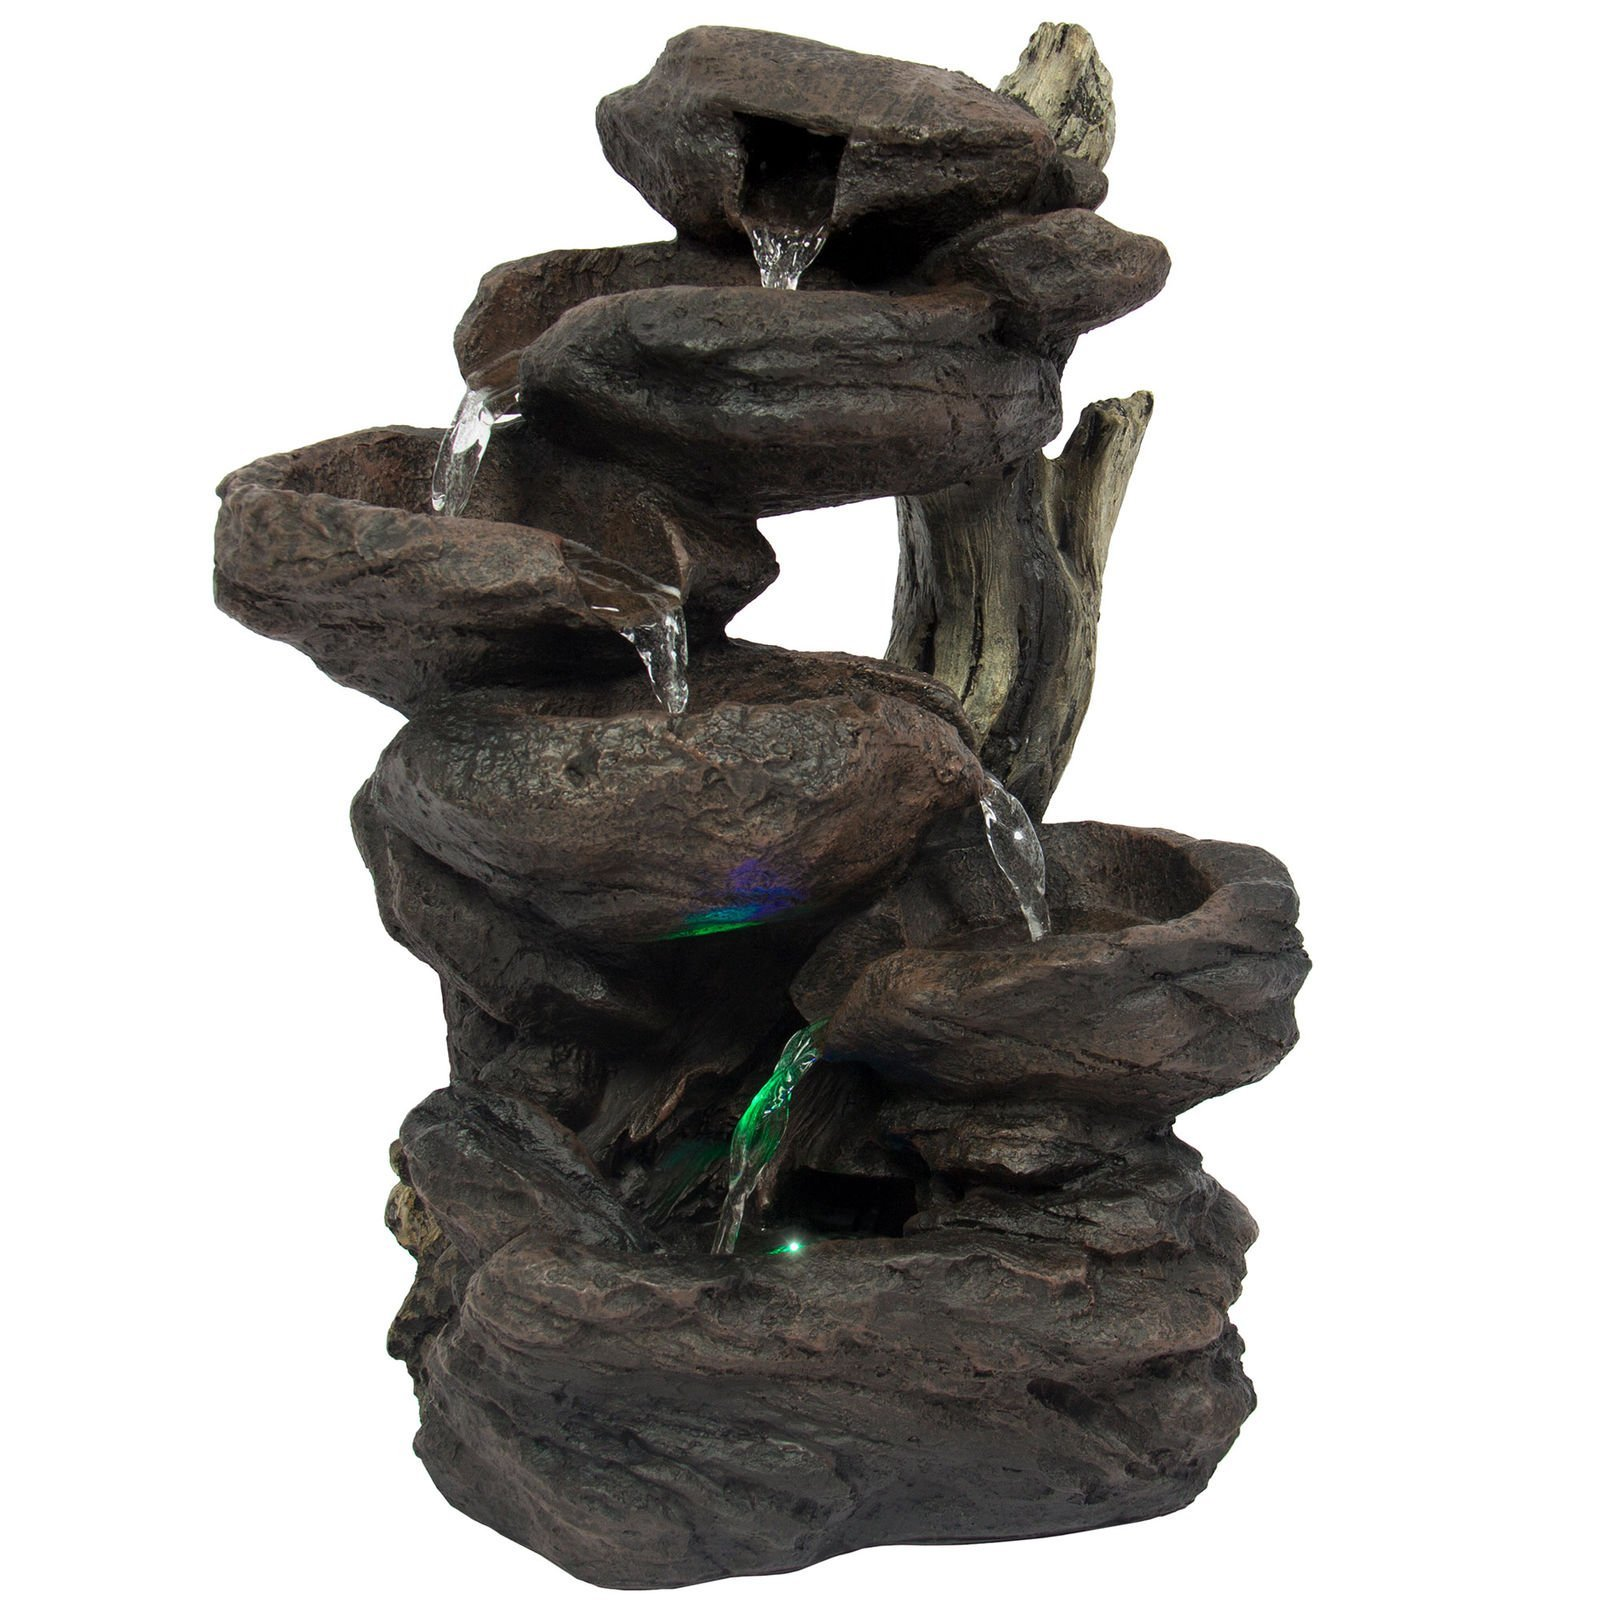 NEW Home Indoor 6-Tier Tabletop Fountain Waterfall With Multicolor LED Lights